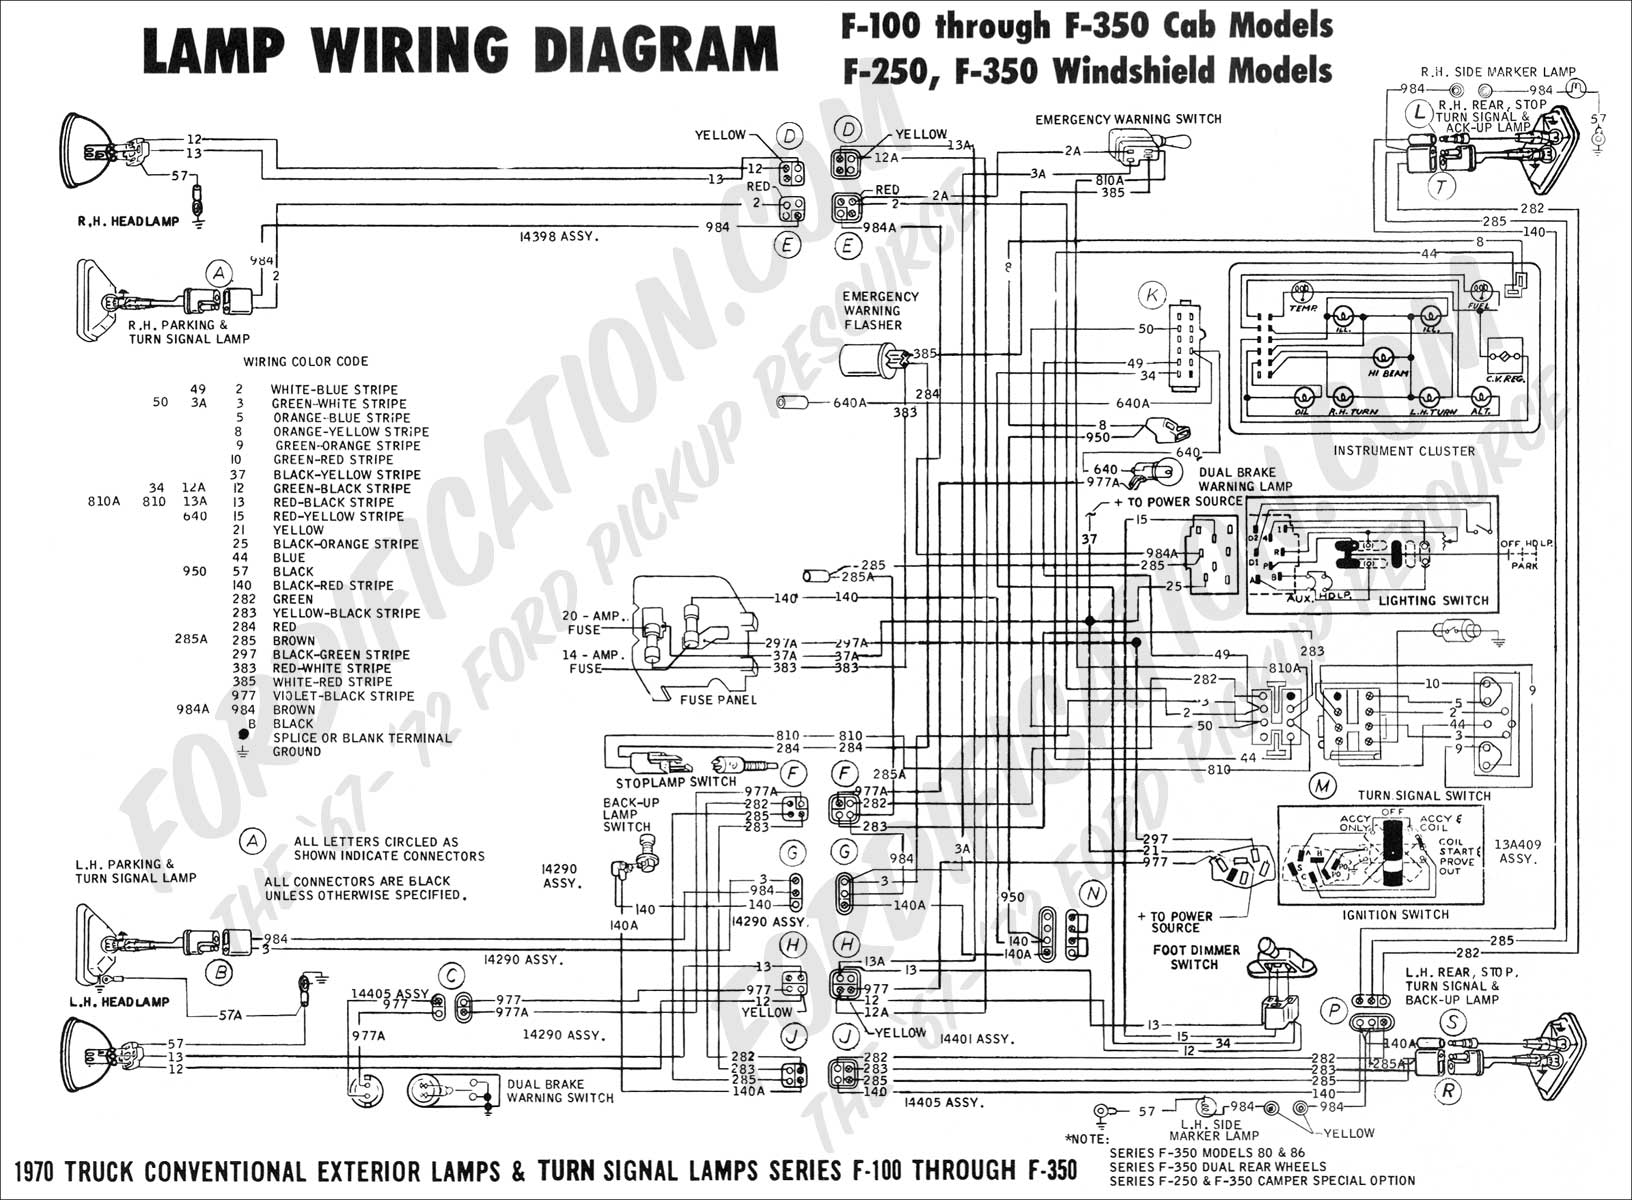 wiring diagram_70ext lights01 ford f250 wiring diagram online f250 trailer wiring diagram 1990 ford f 250 wiring diagram at honlapkeszites.co